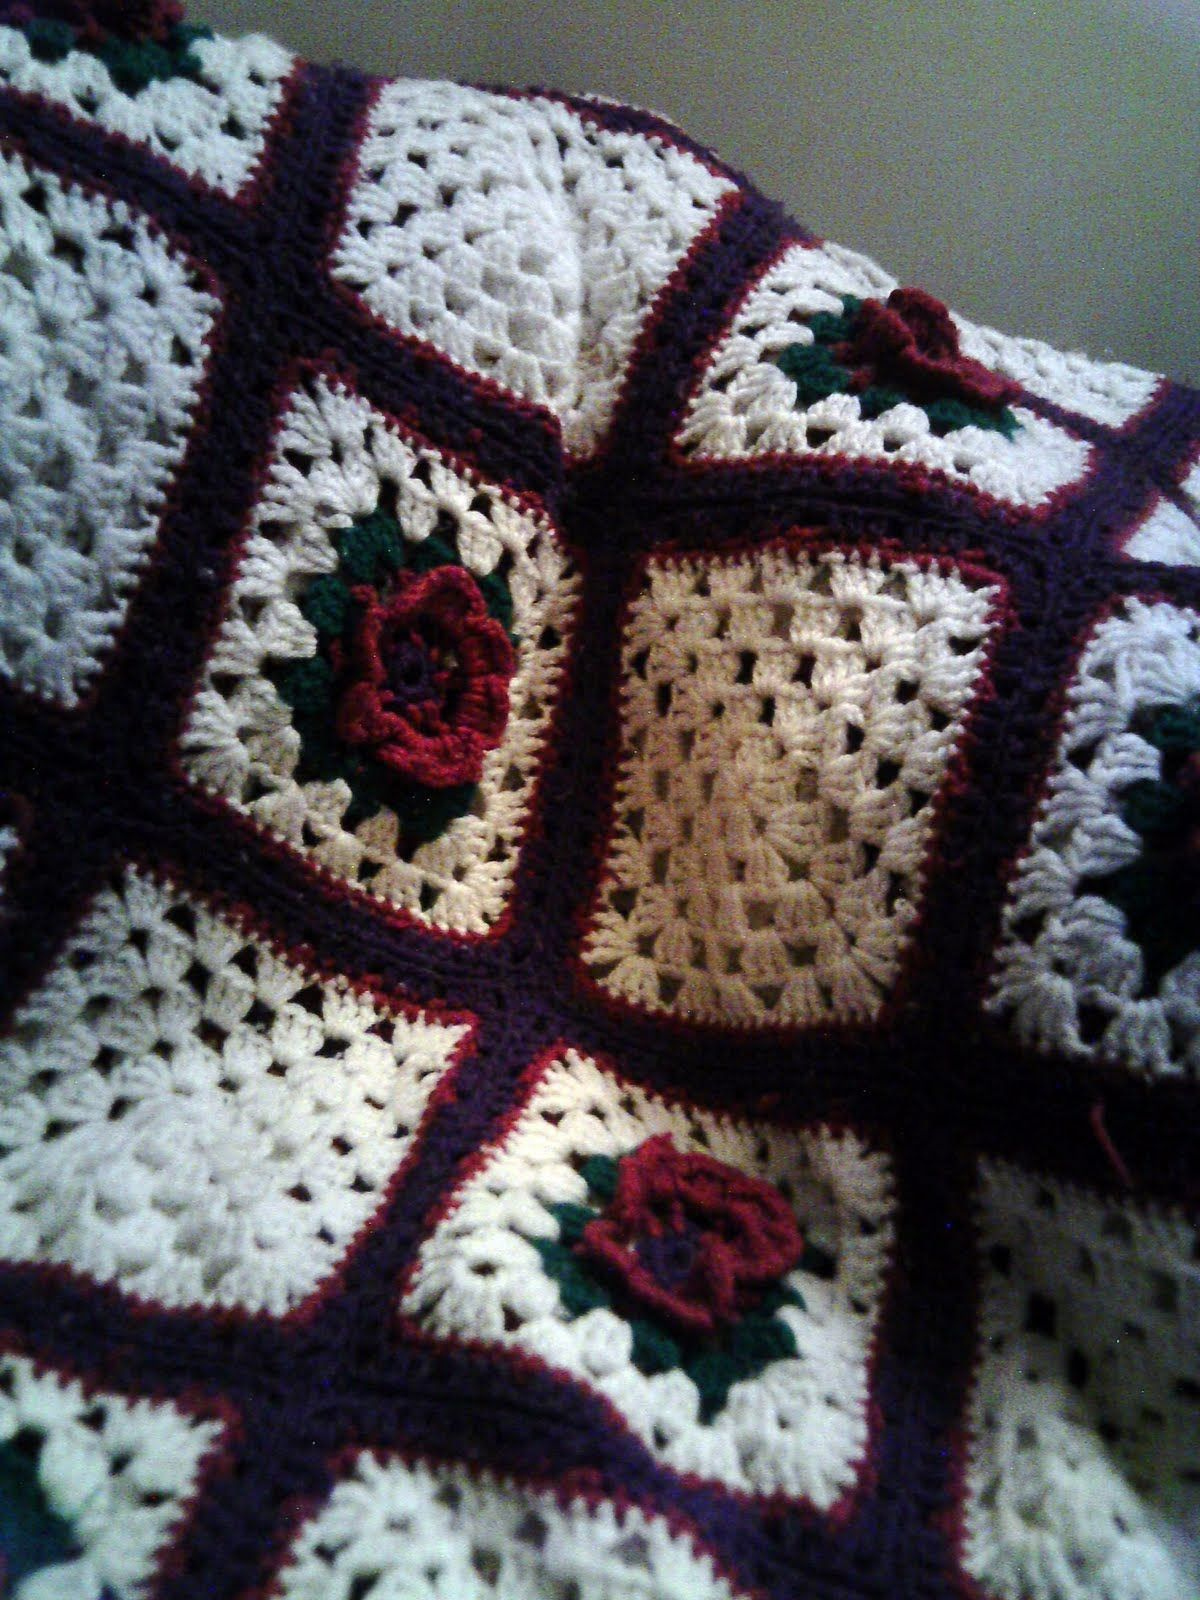 Crochet Afghan Squares -- Free Crocheted Afghan Square Patterns. I ...